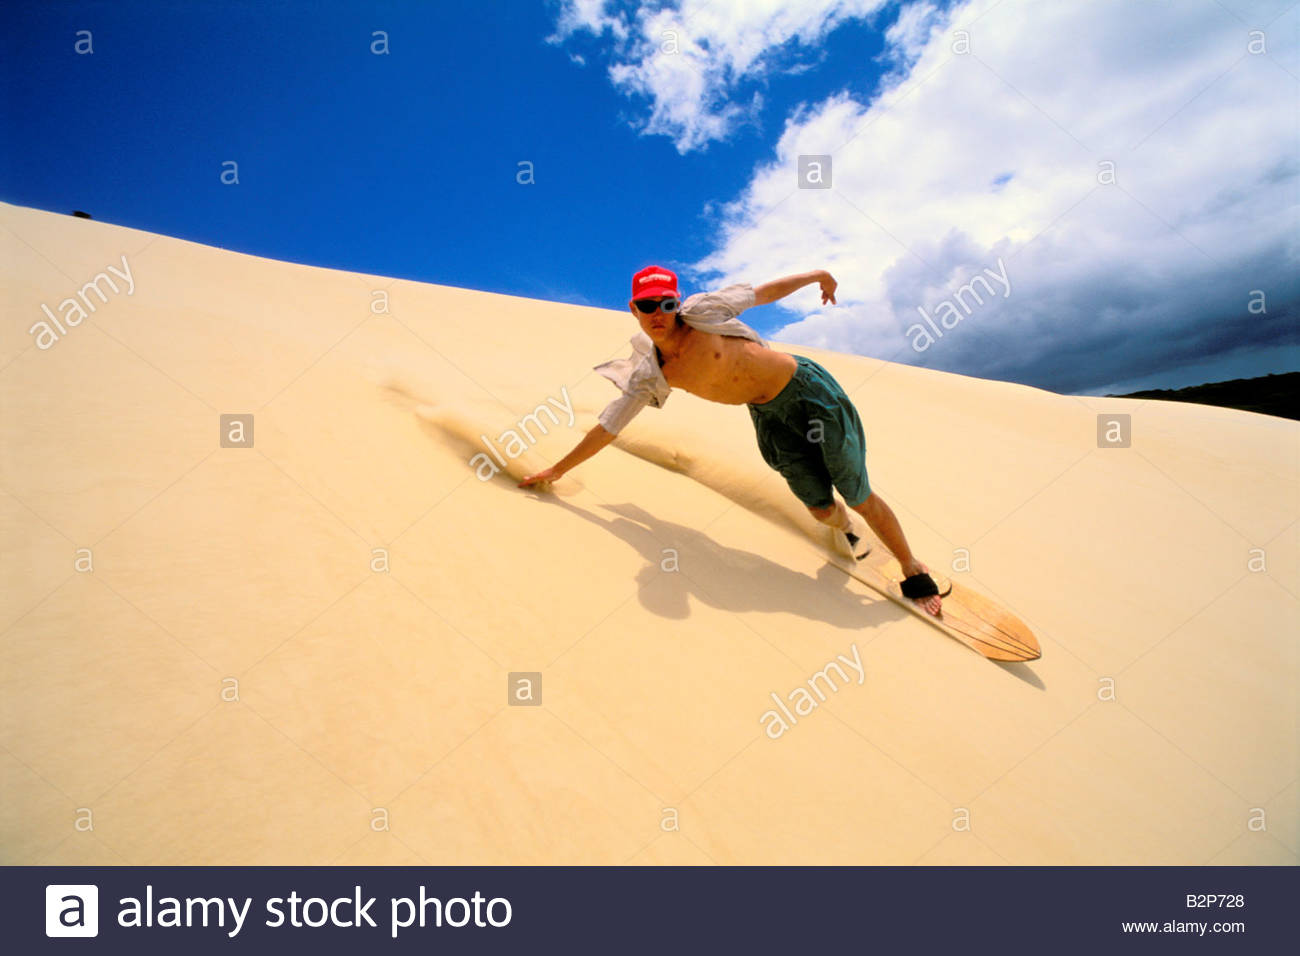 Young Man Surfing Down A Sand Dune With A Sandboard On